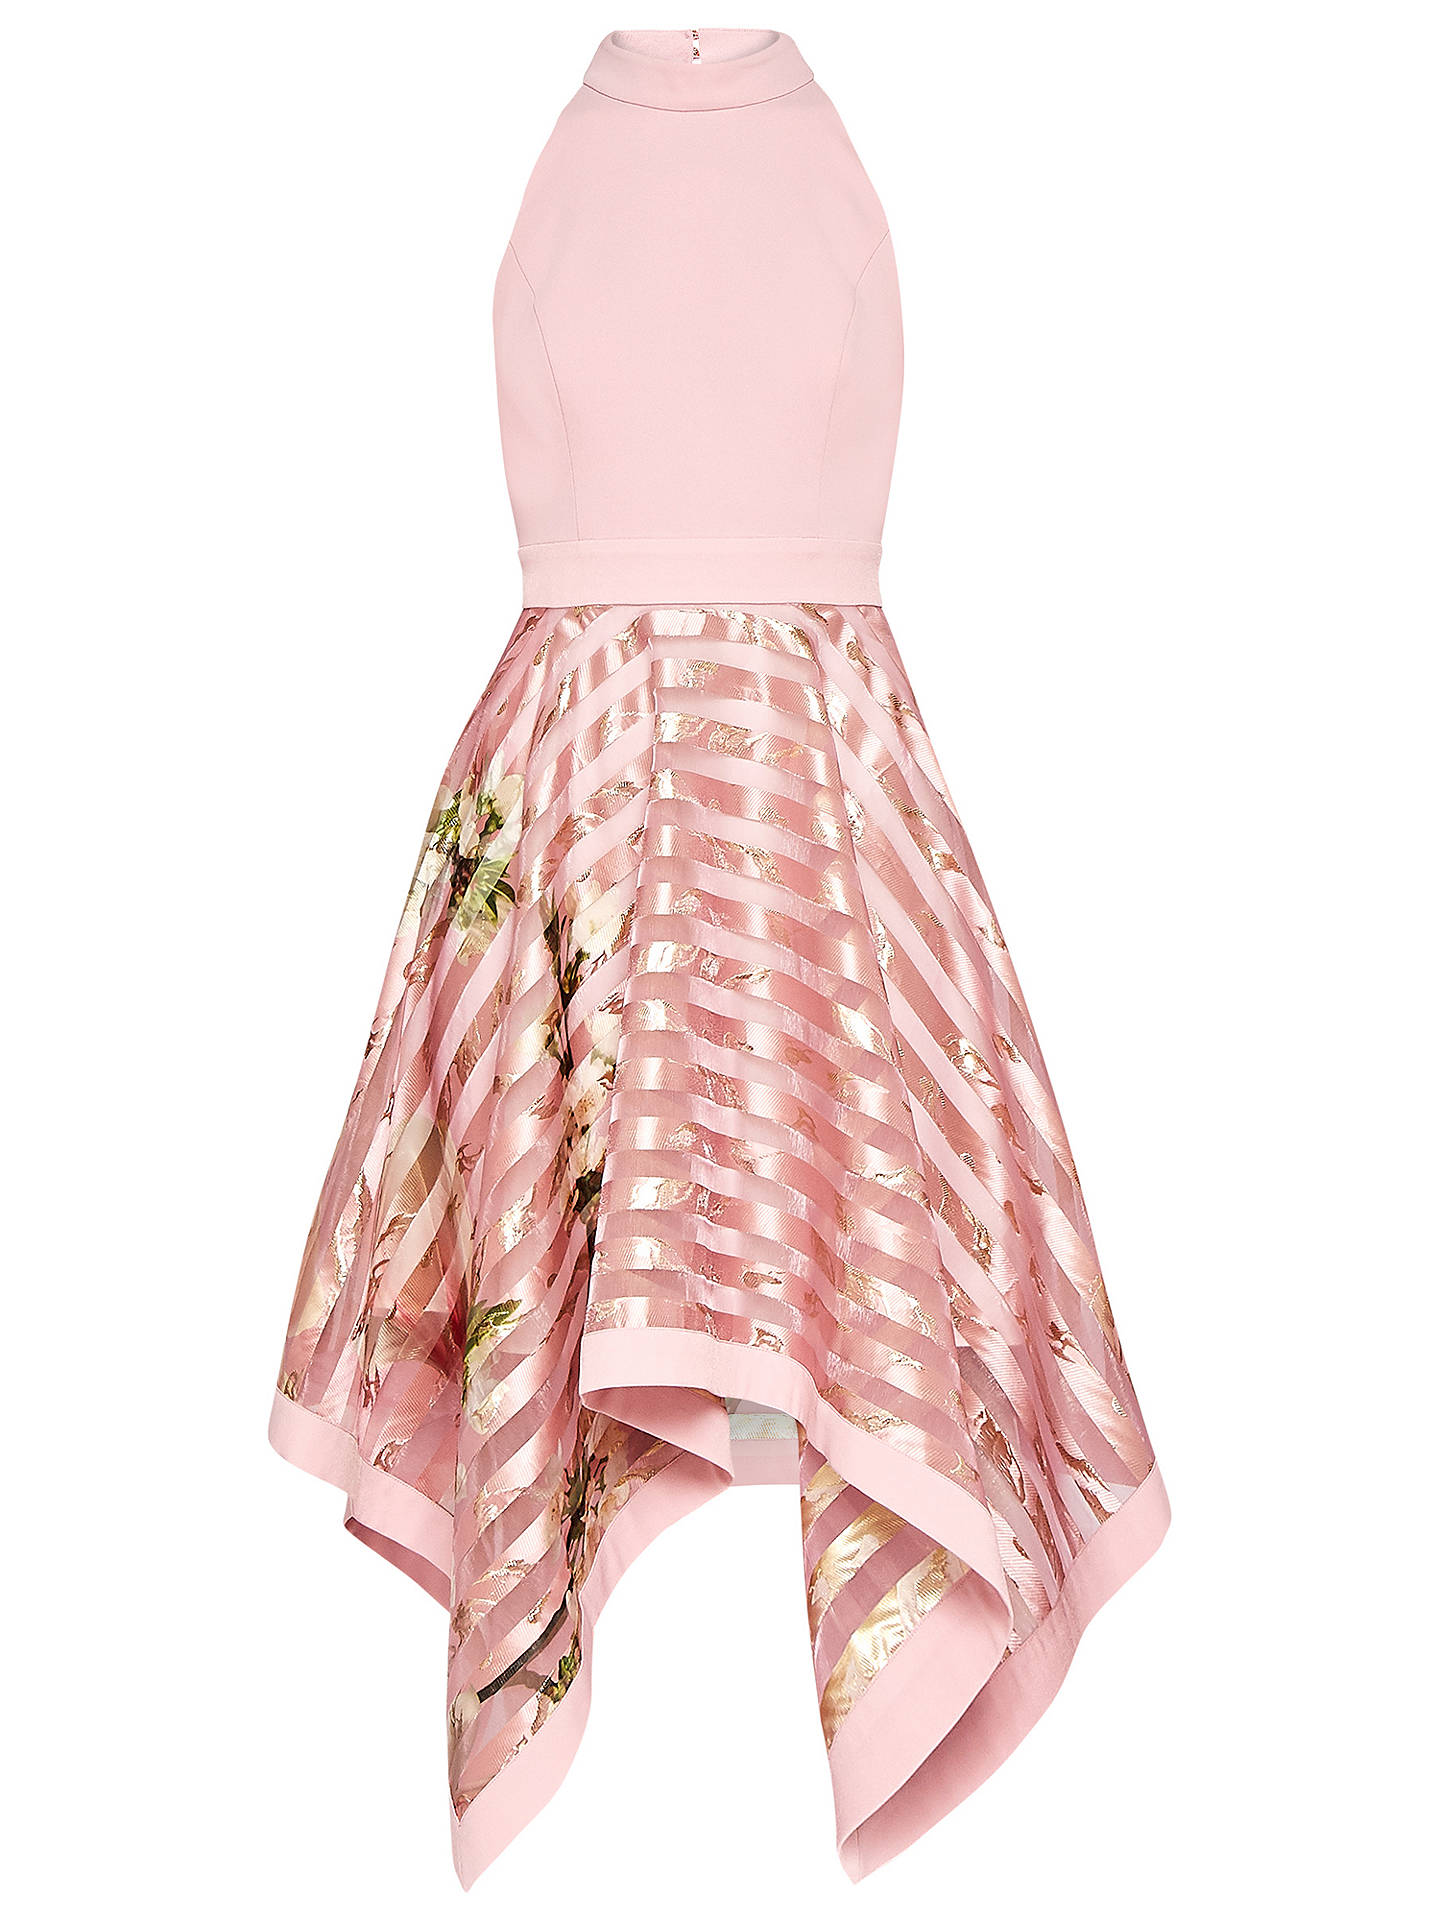 BuyTed Baker Angelik Harmony Burnout Sripe Dress, Pink, 0 Online at johnlewis.com